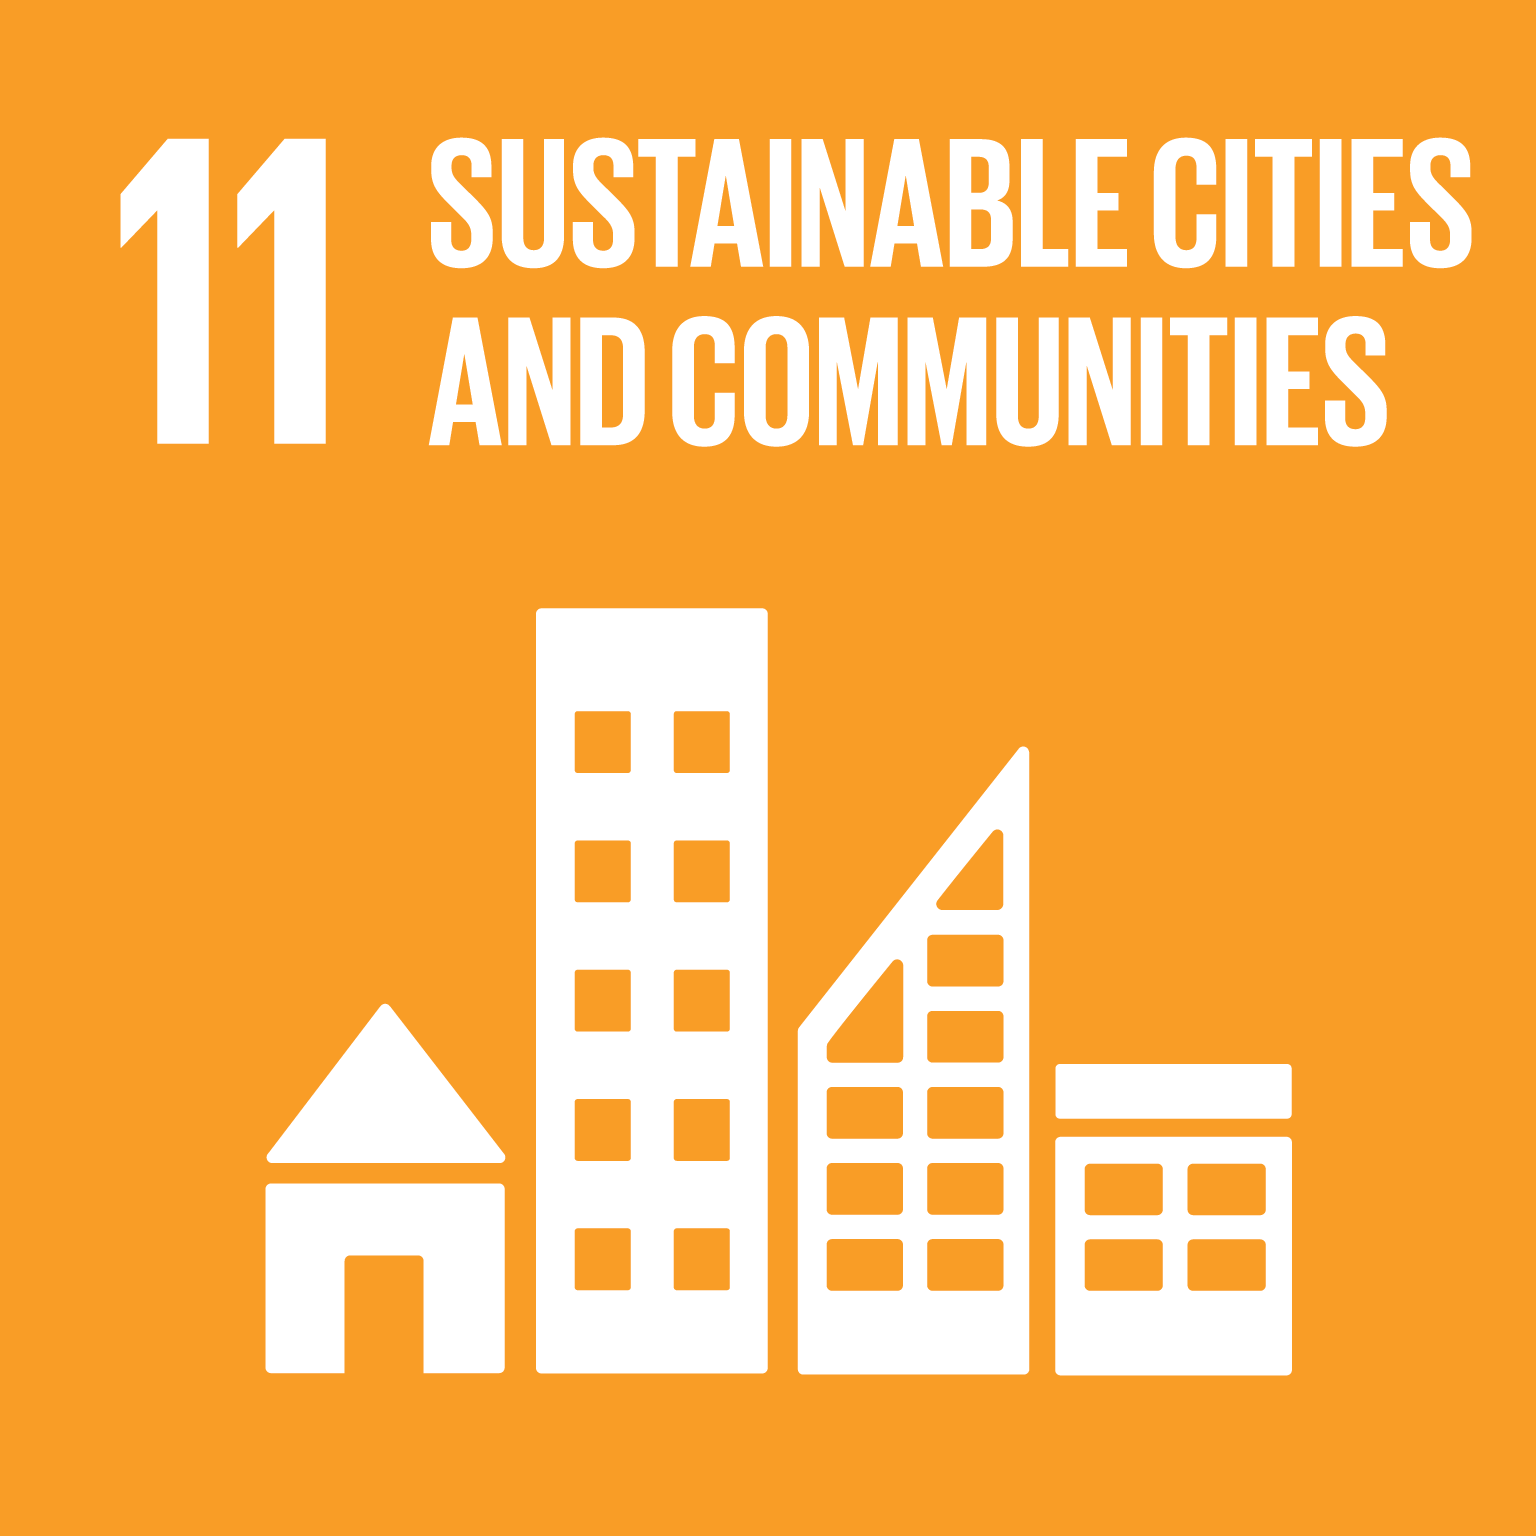 11. Sustainable ciries and communities